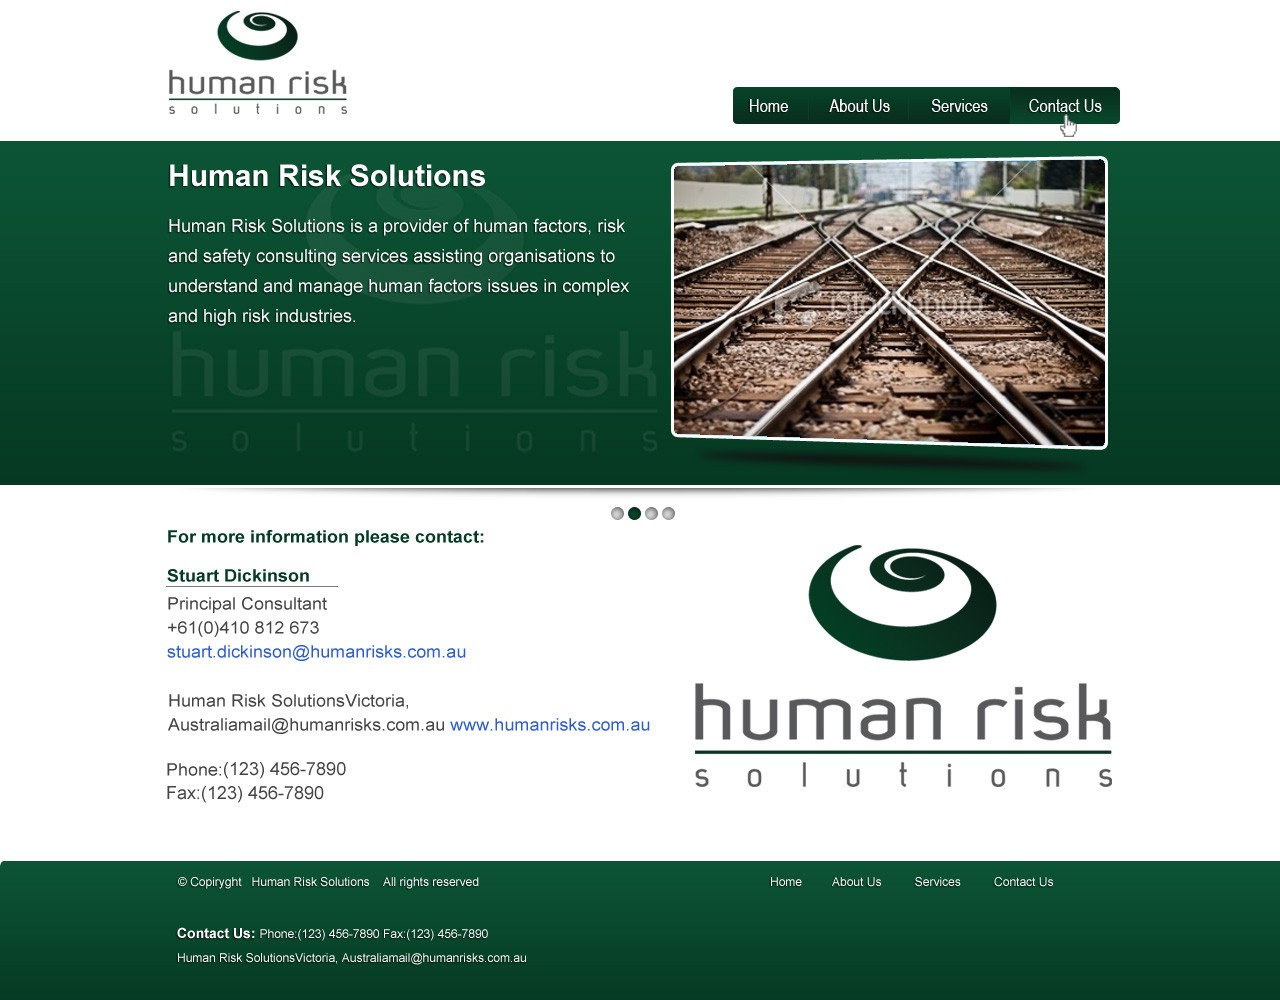 Create the next website design for Human Risk Solutions